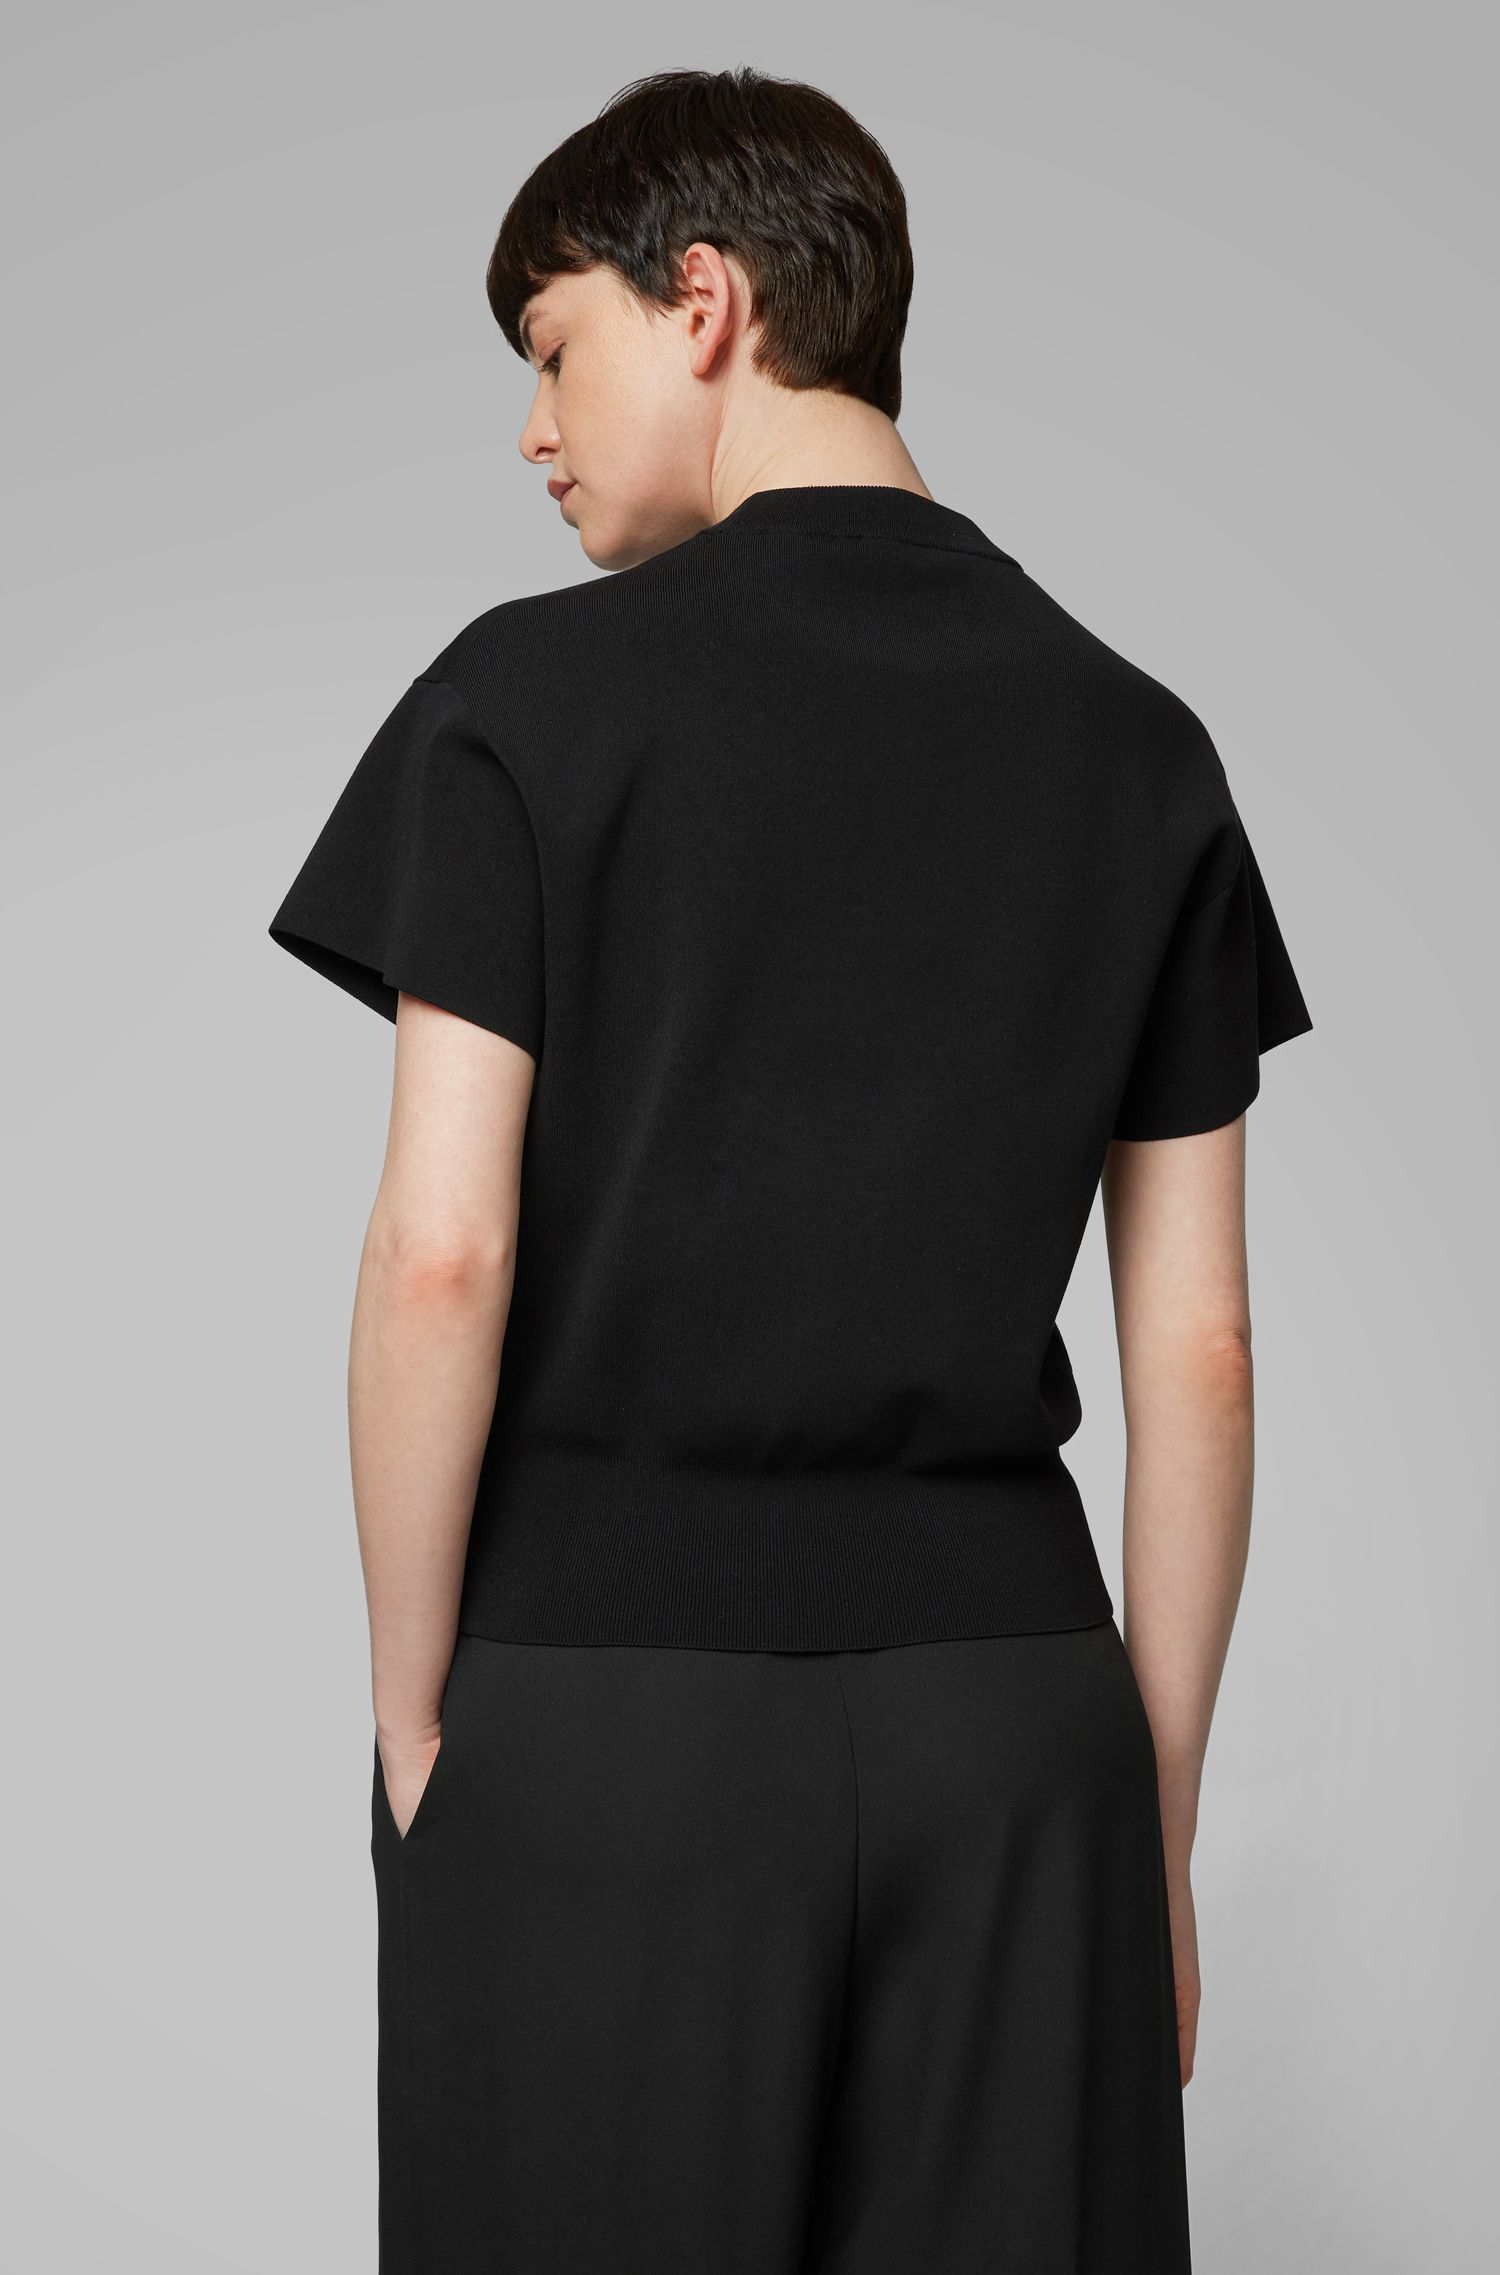 Short-sleeved sweater with mock neckline, Black